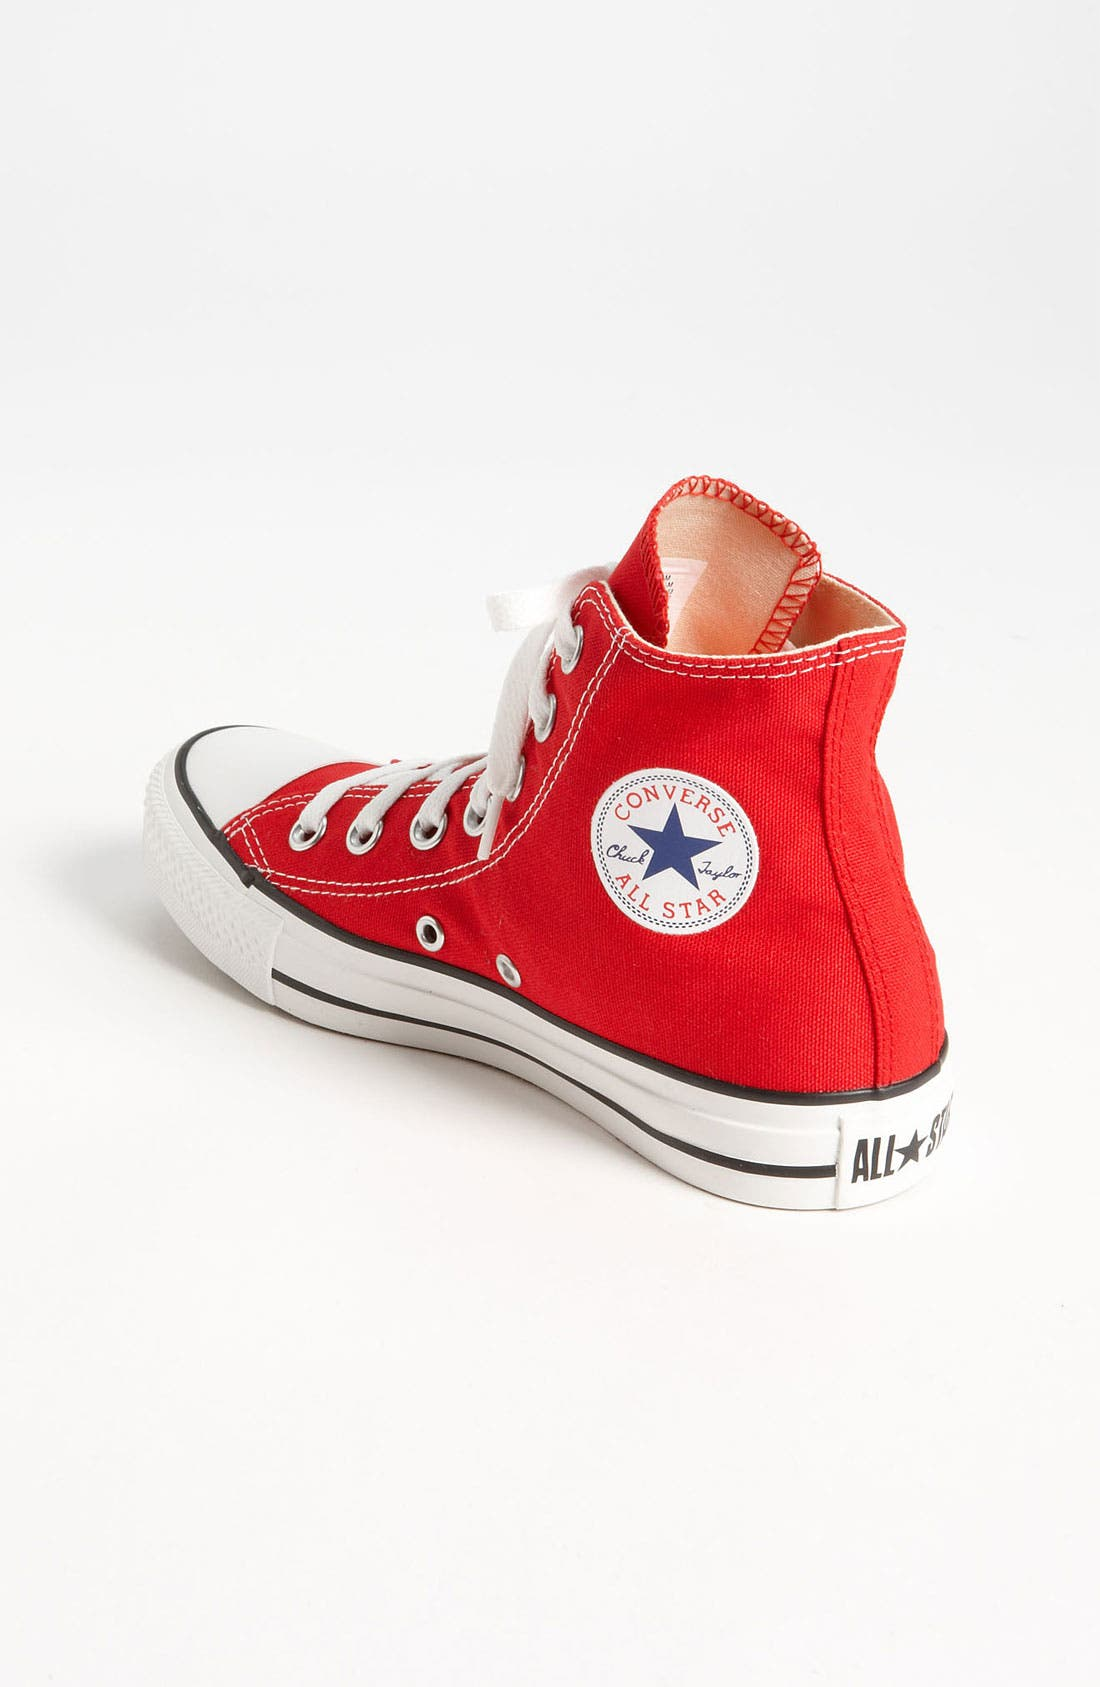 Chuck Taylor<sup>®</sup> High Top Sneaker,                             Alternate thumbnail 2, color,                             600